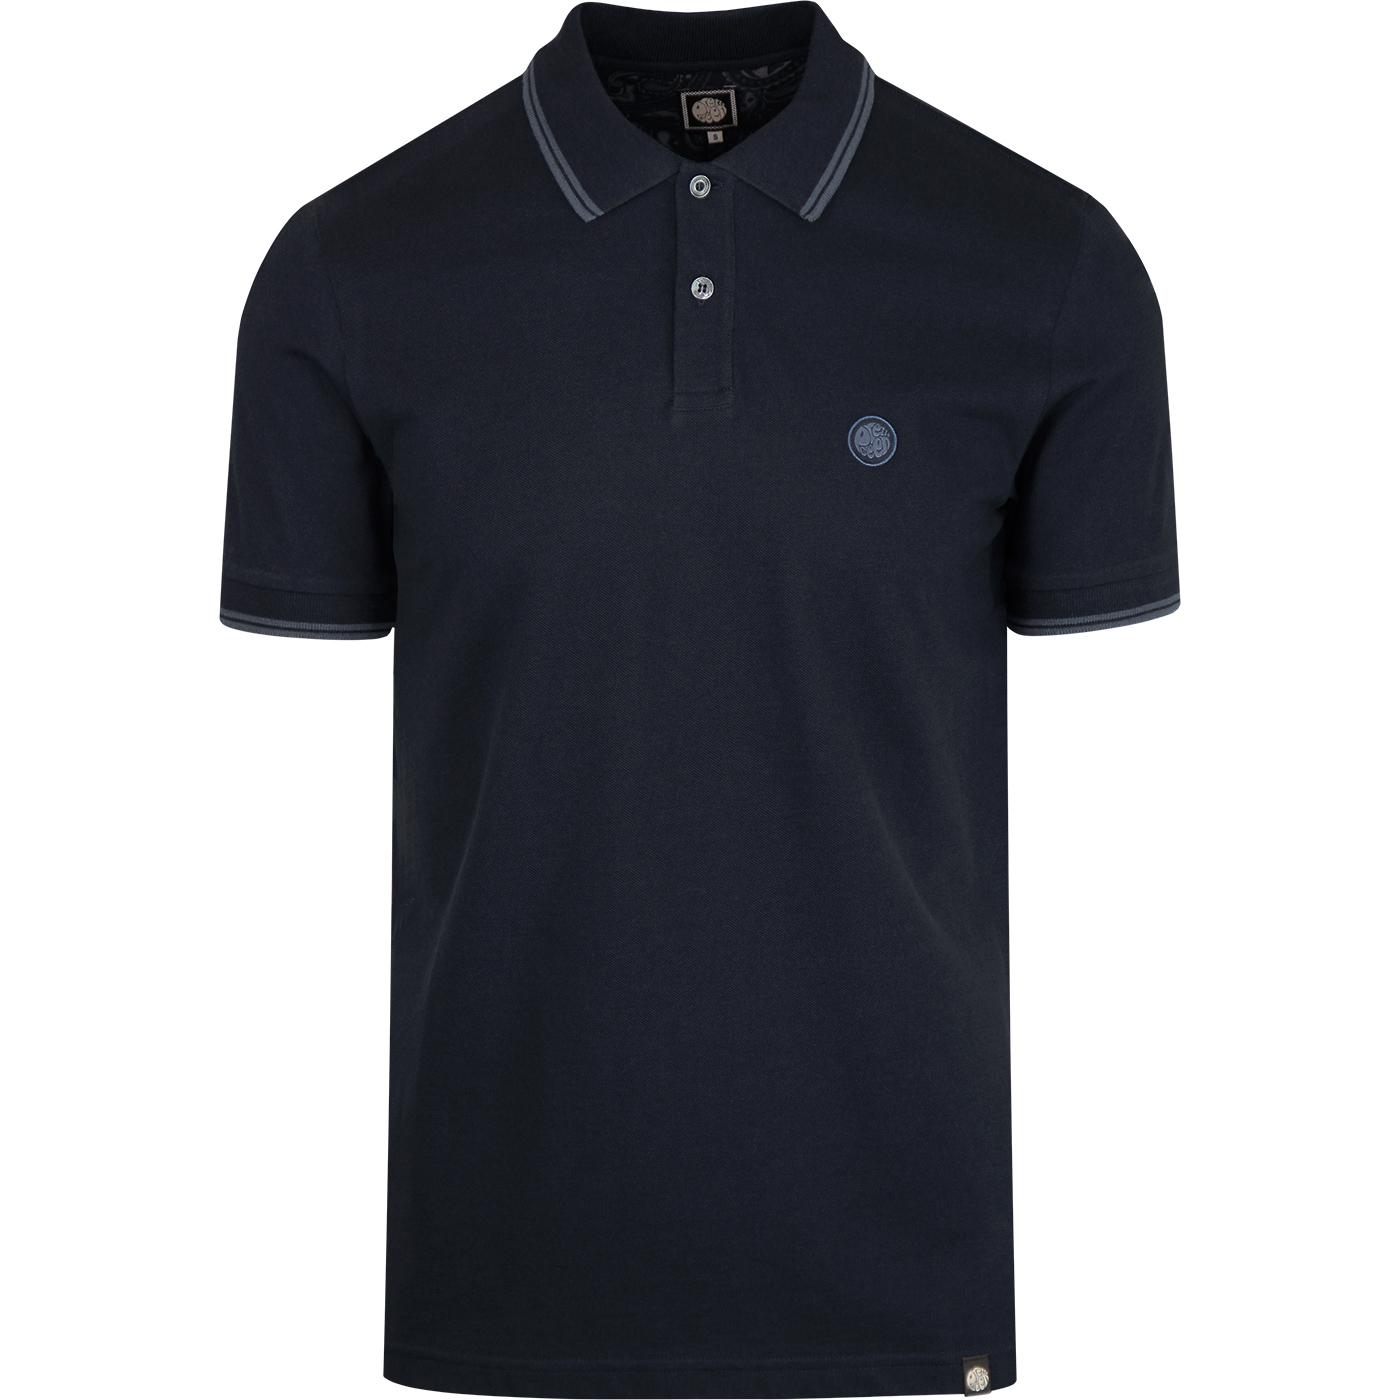 PRETTY GREEN Retro Mod Twin Tipped Pique Polo NAVY